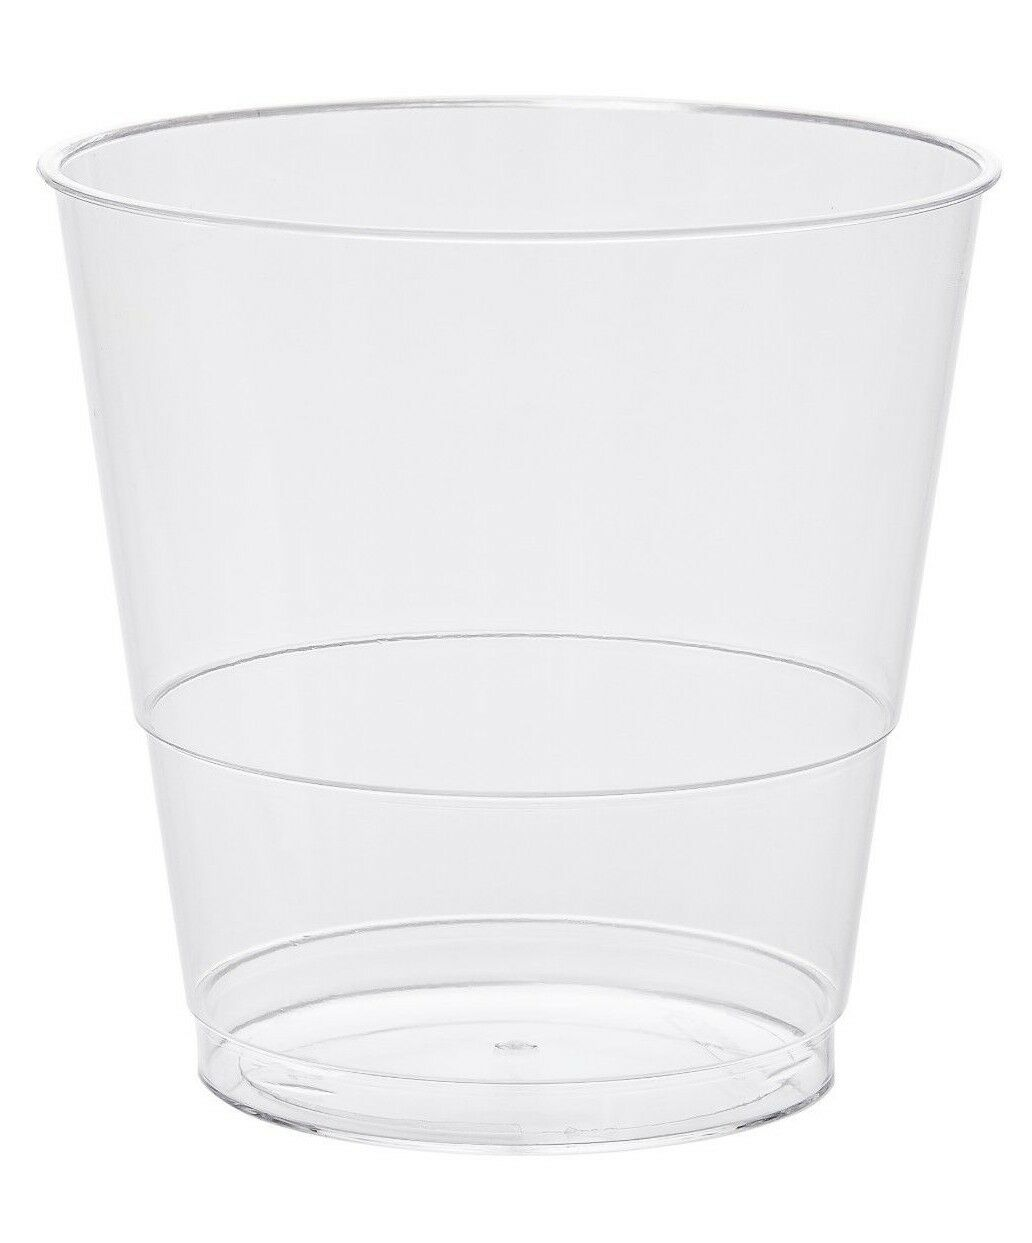 8oz 22cl Clear Disposable Hard Plastic Tumblers Cups - Party, Drinks, Desserts